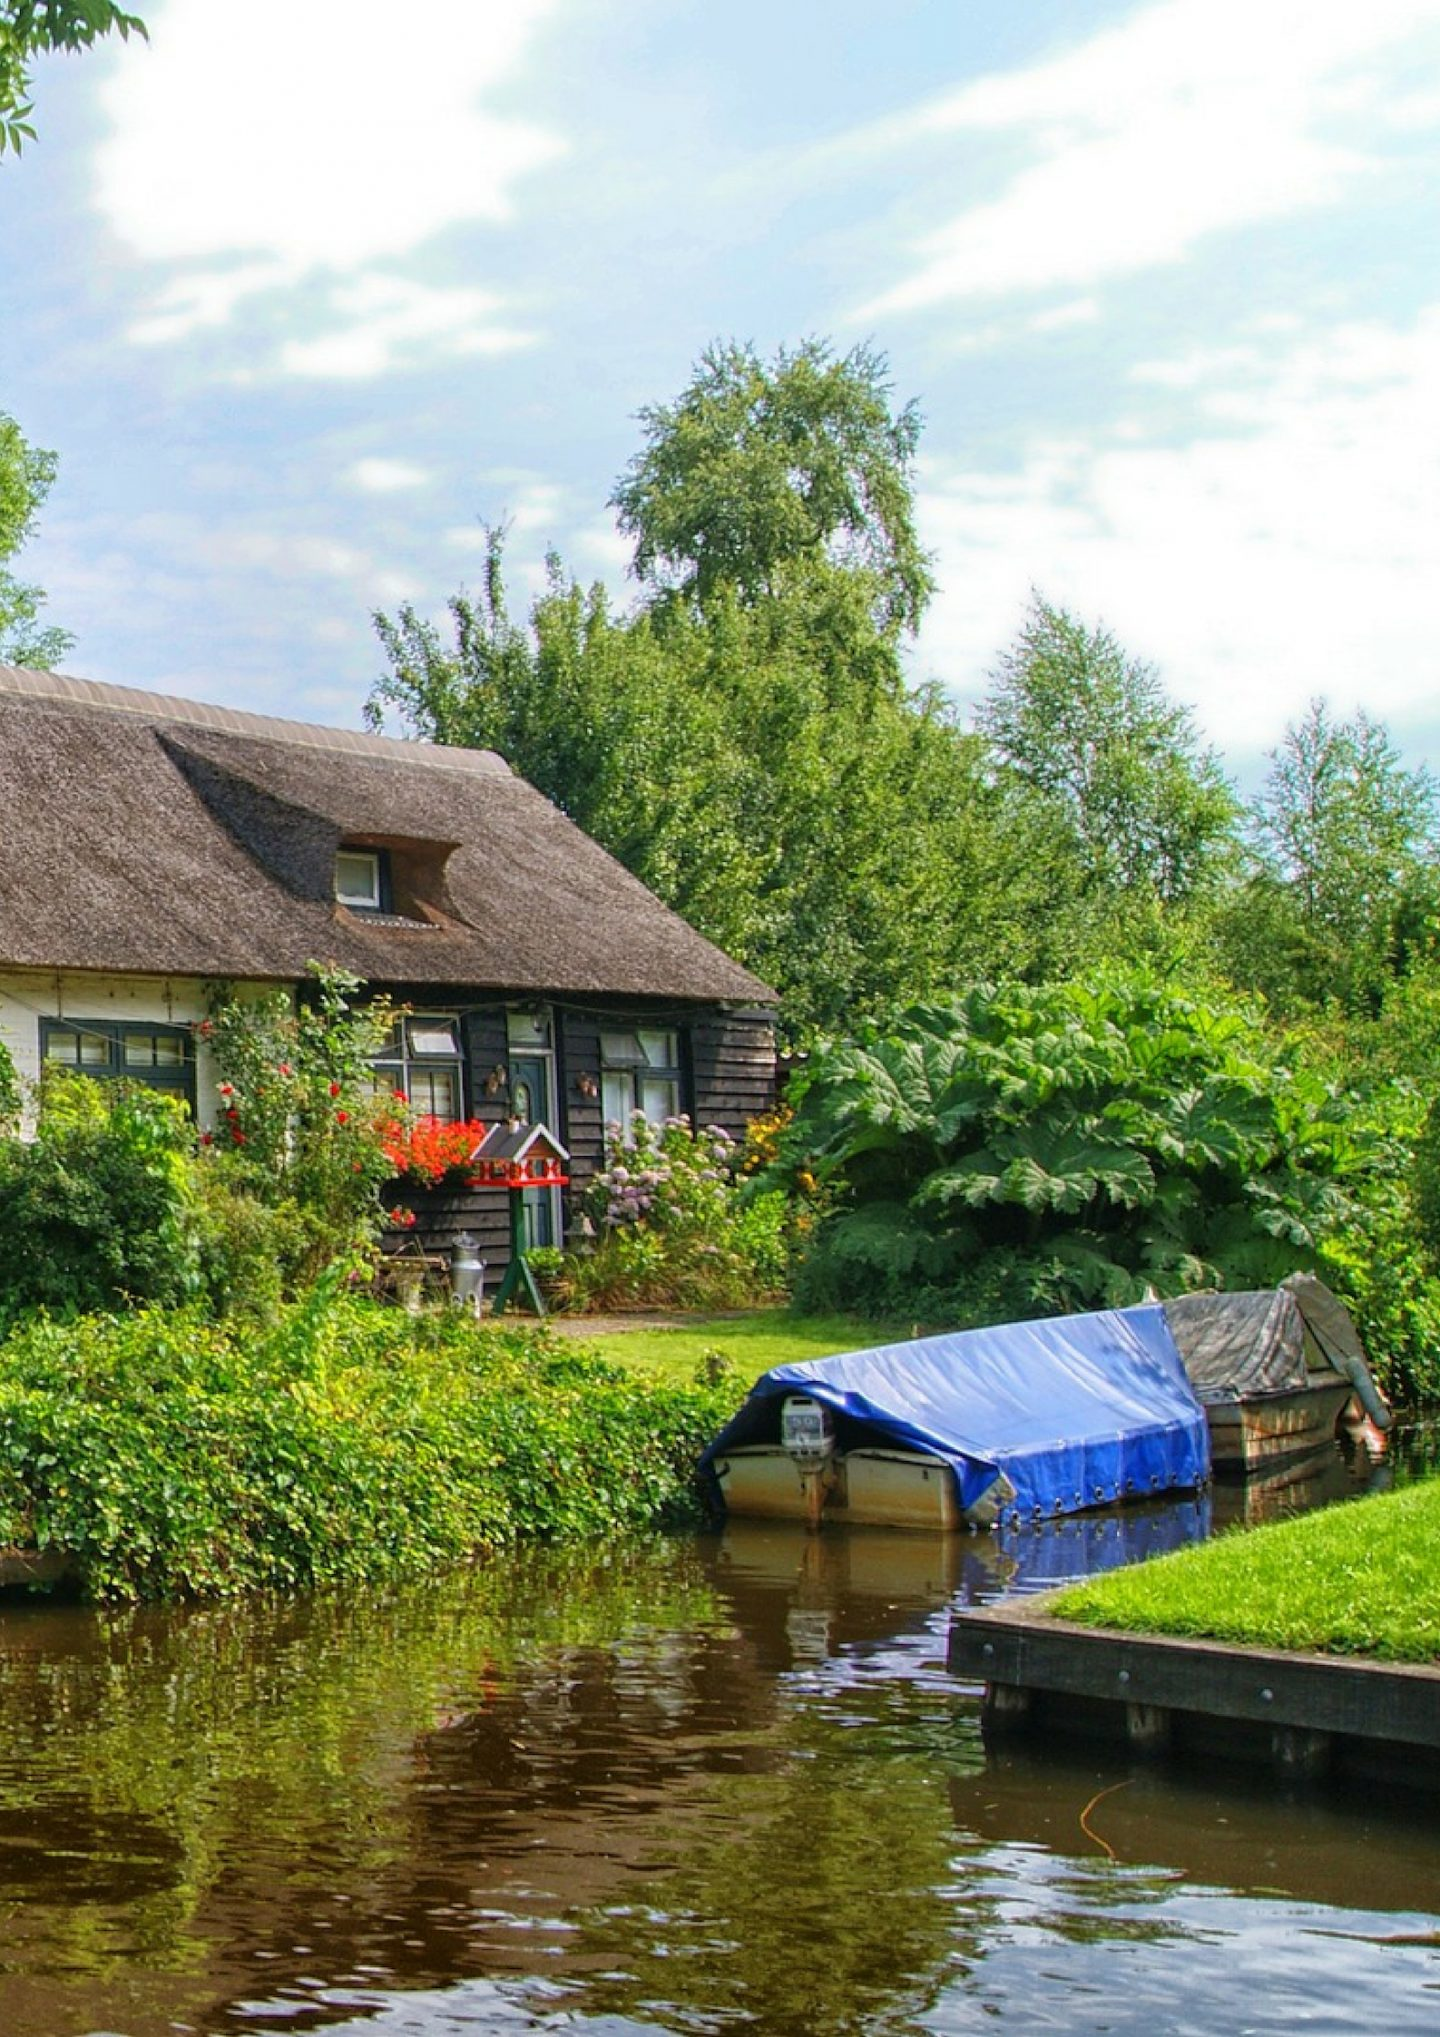 THE MAGICAL TOWN OF GIETHOORN